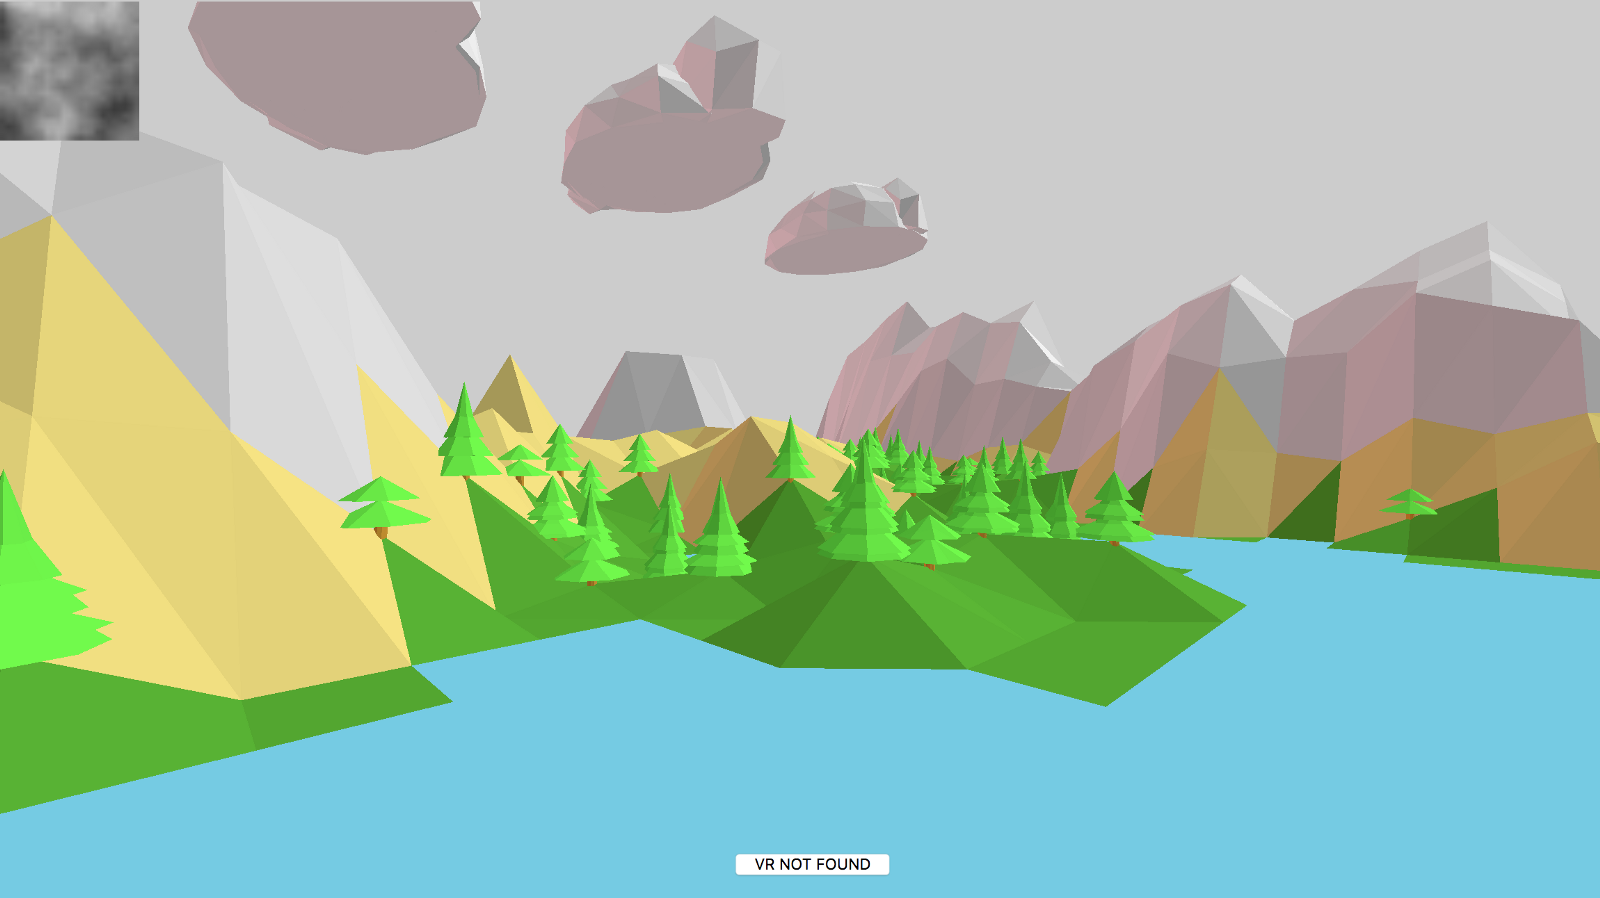 Terrain with trees and clouds